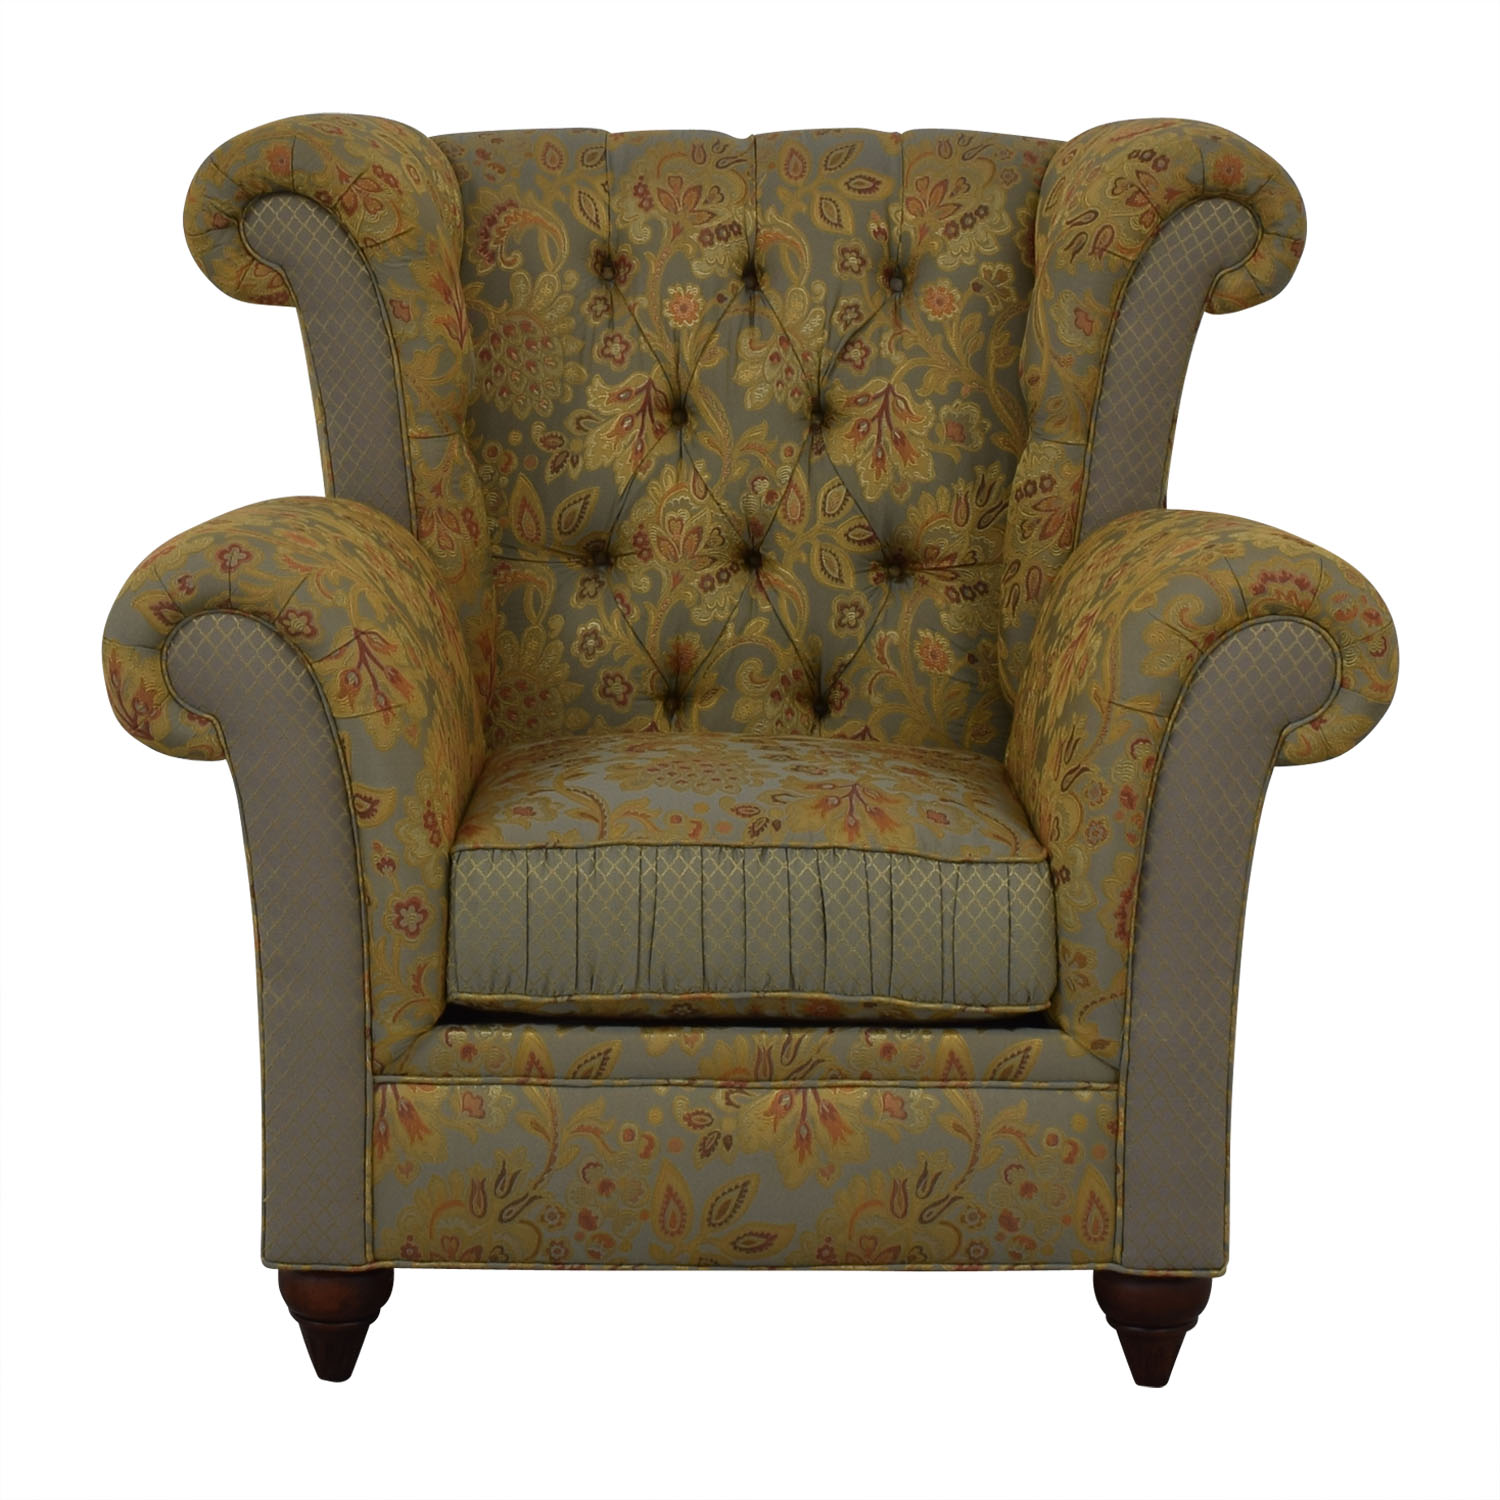 Safavieh Safavieh Patterned Accent Chair coupon